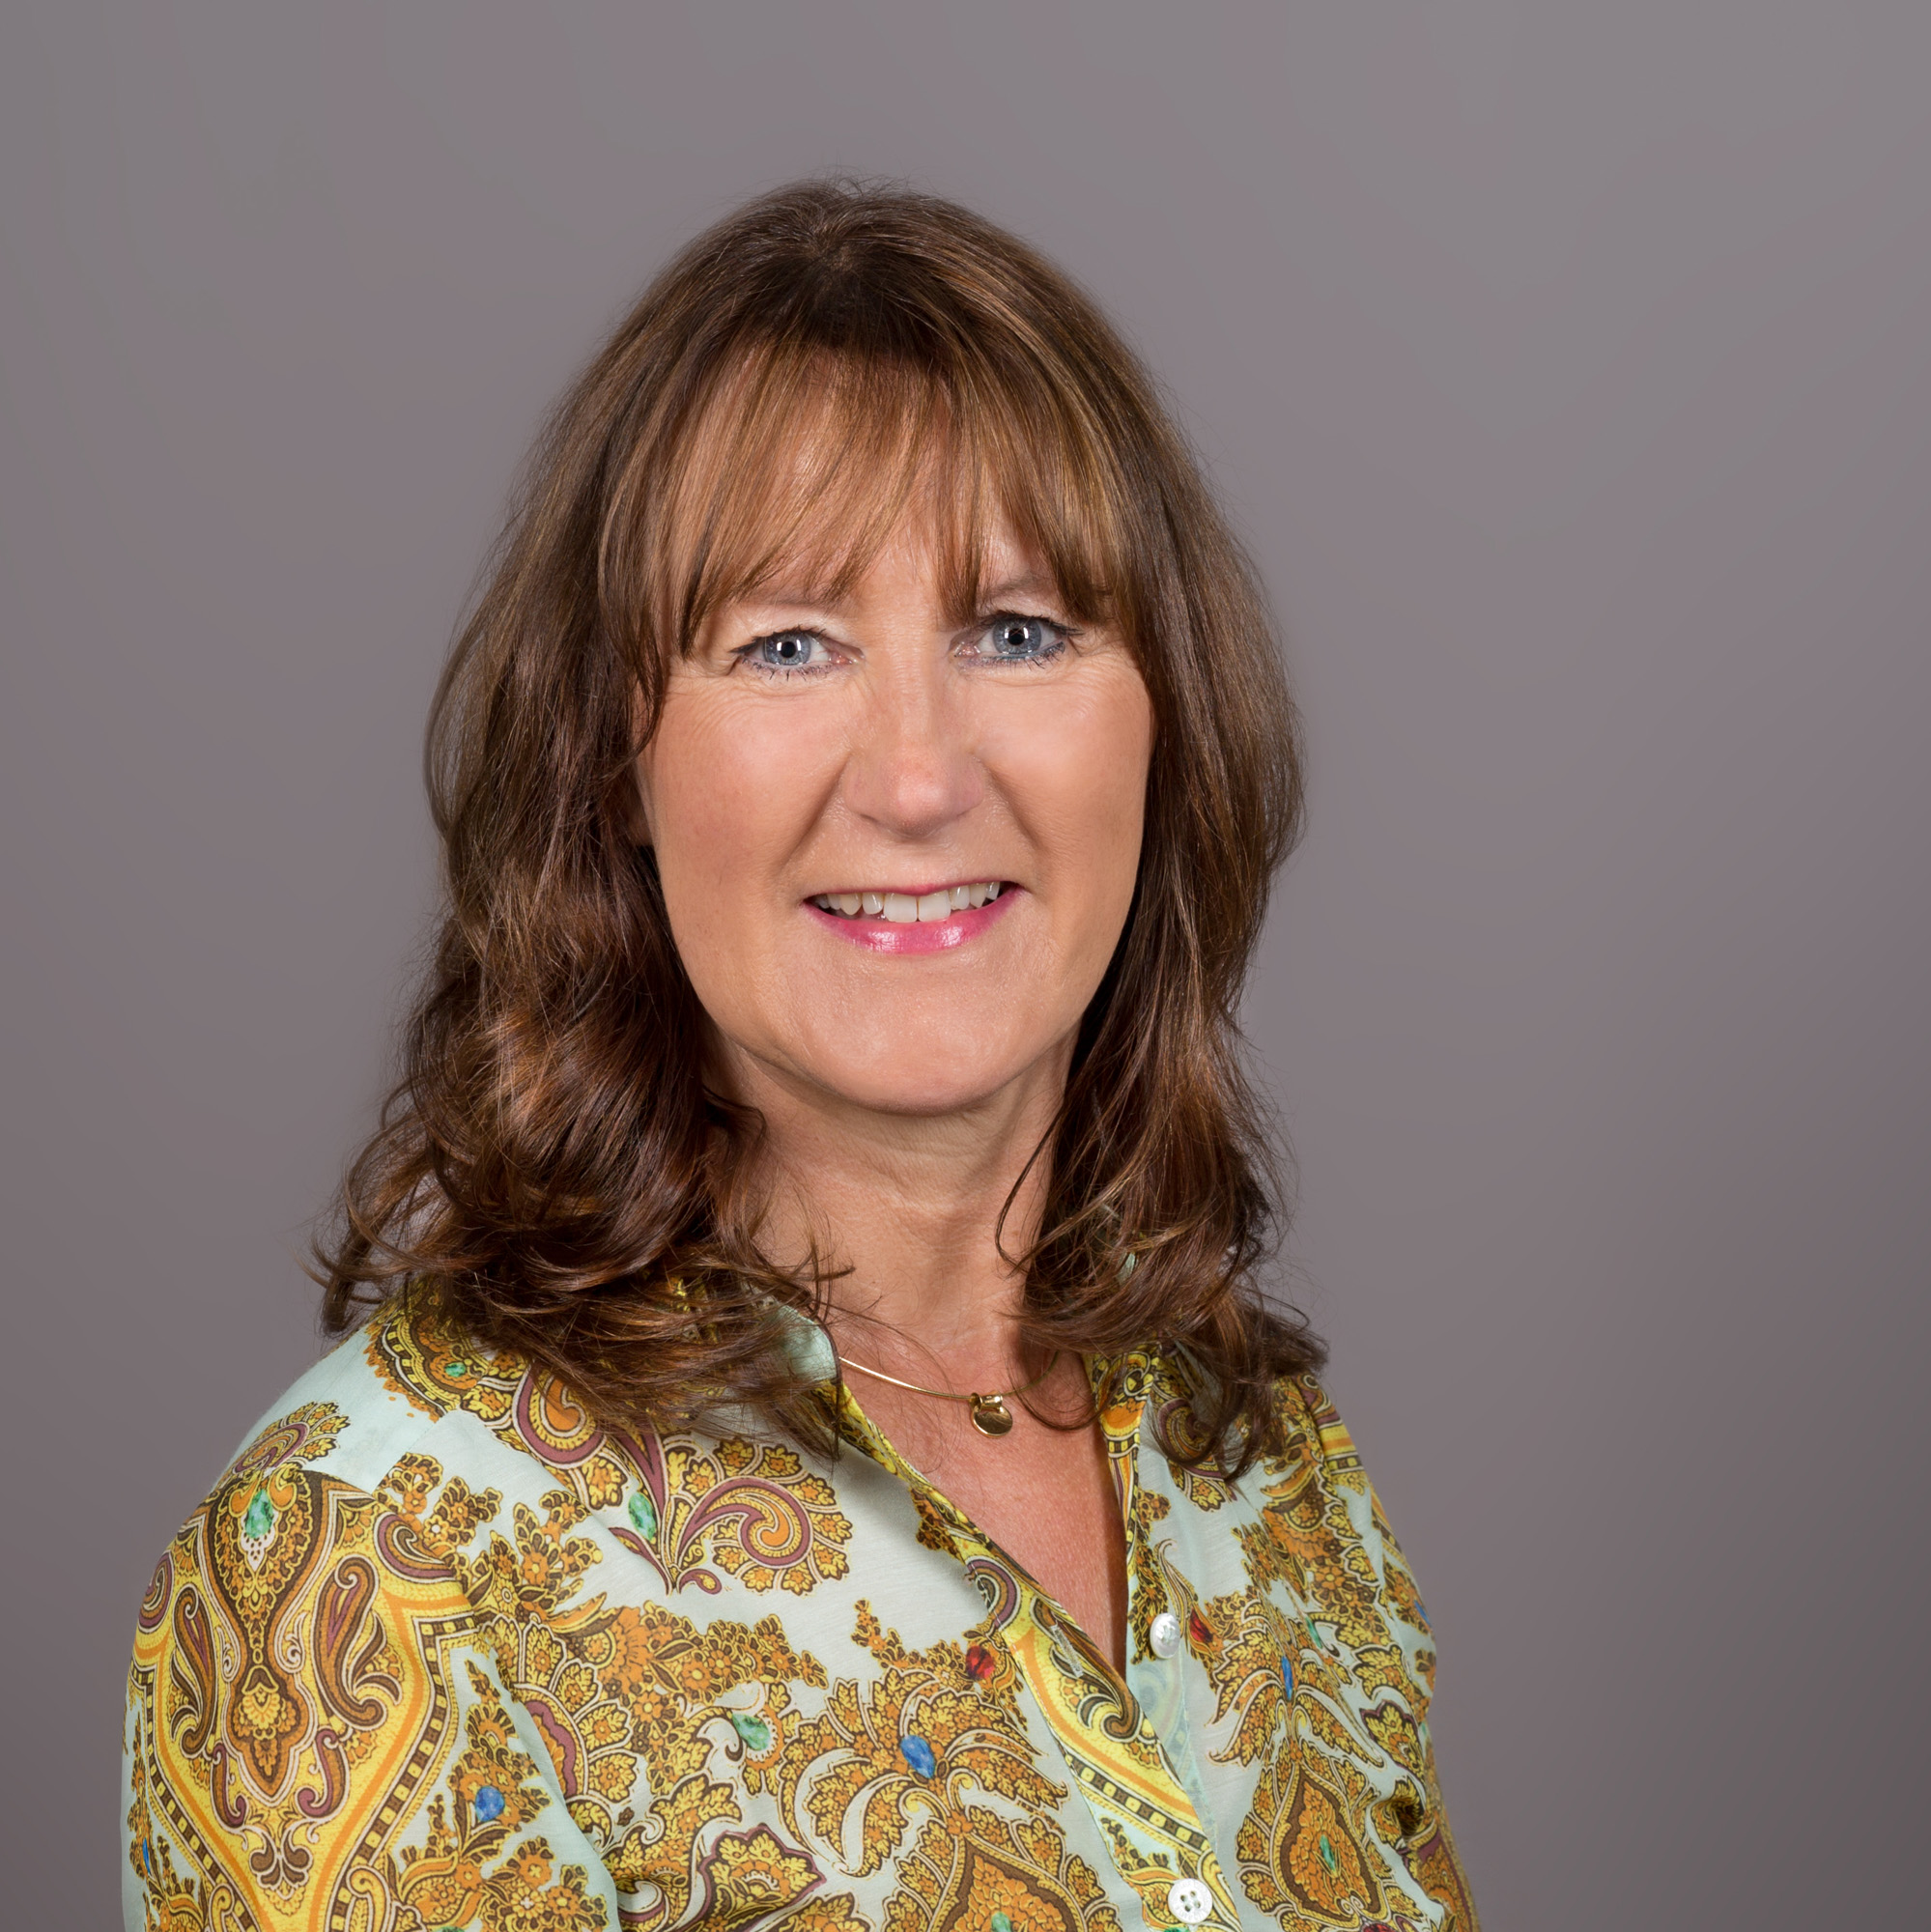 Sharon Shelbourne, Owner of Beehive Healthcare, Chester